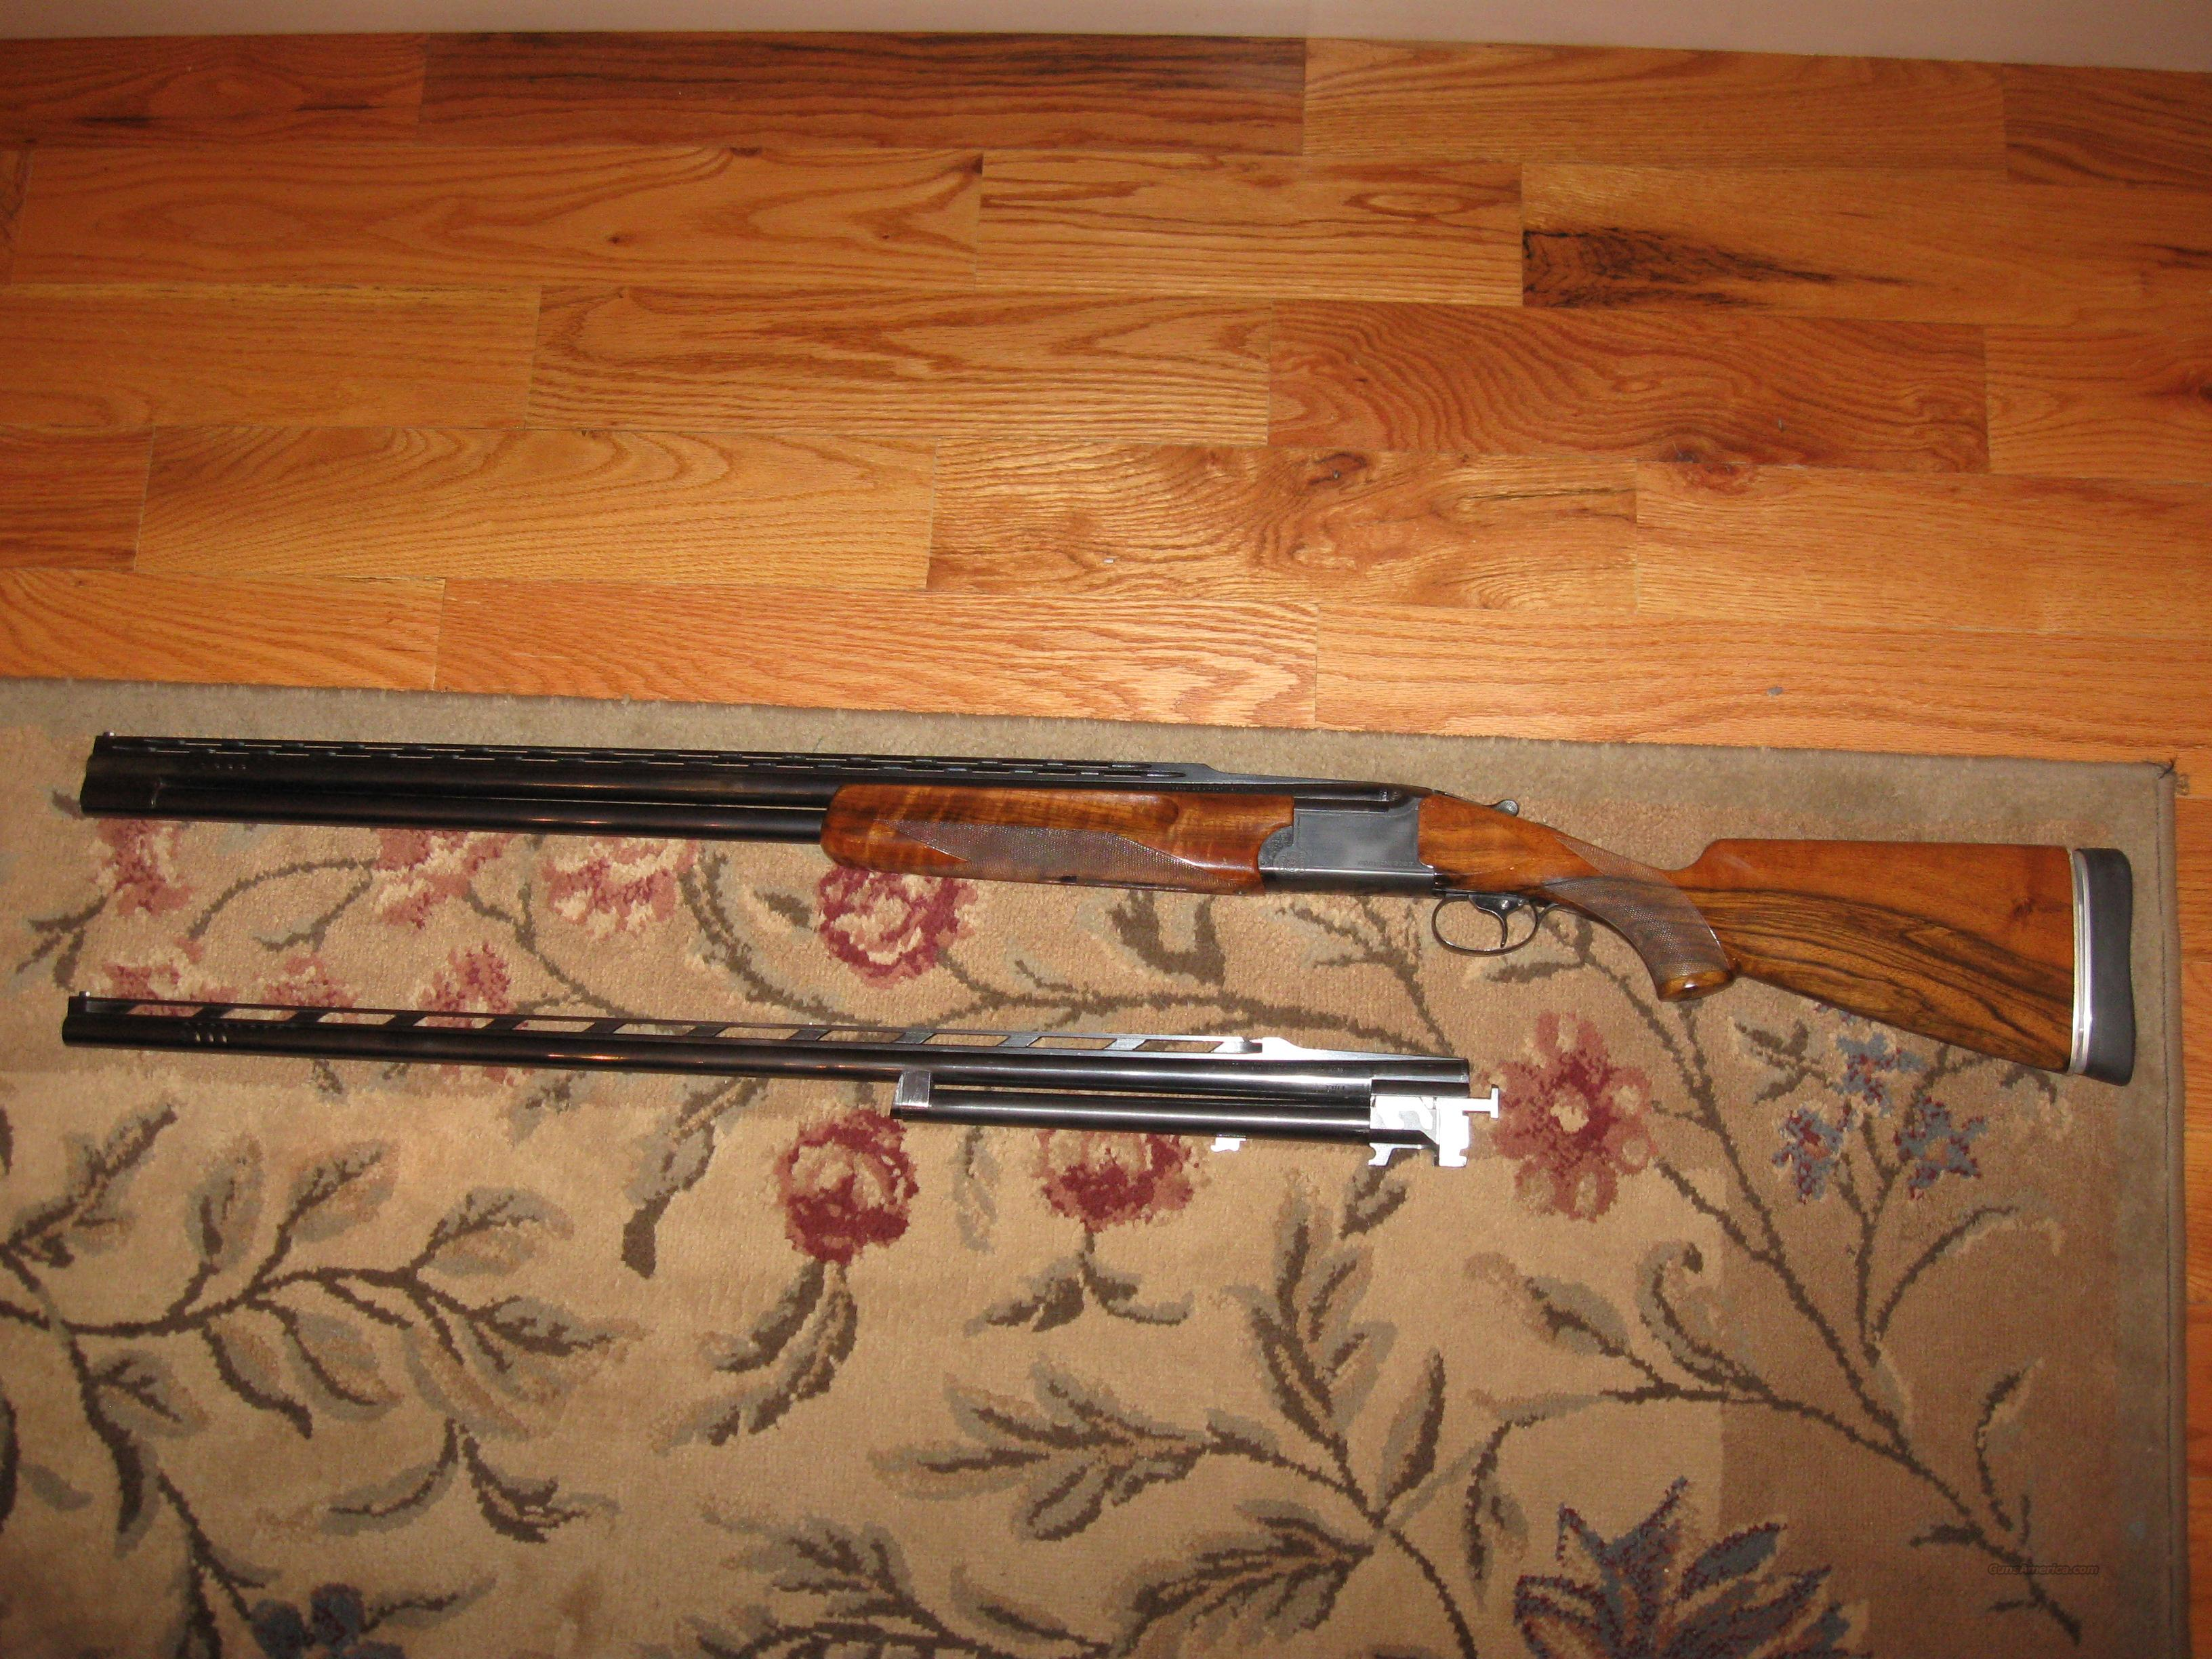 Franchi model 2003 O/U  Guns > Shotguns > Franchi Shotguns > Over/Under > Trap/Skeet